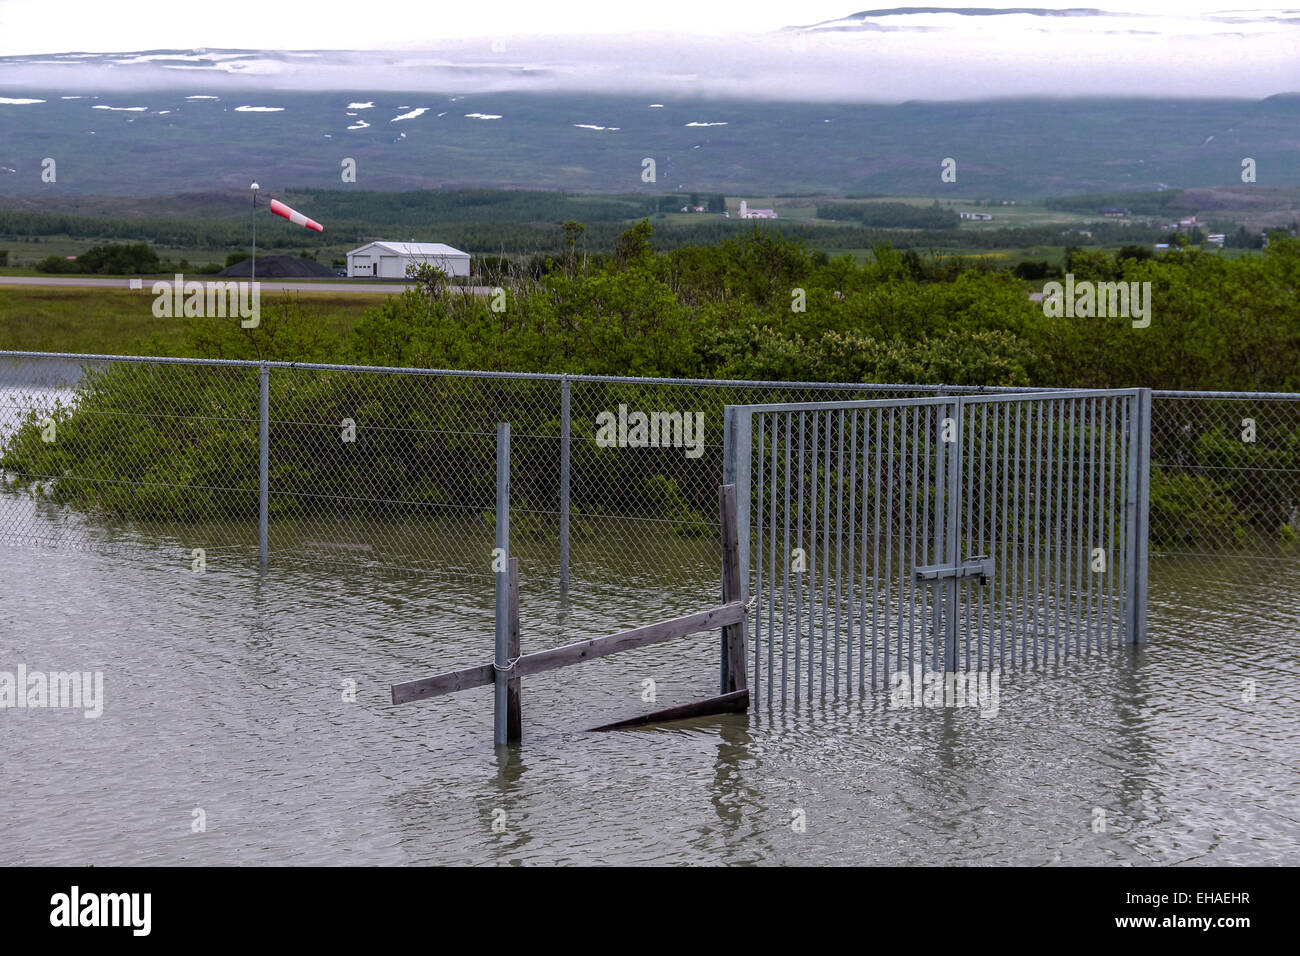 flooded gate at airport in east Iceland Stock Photo